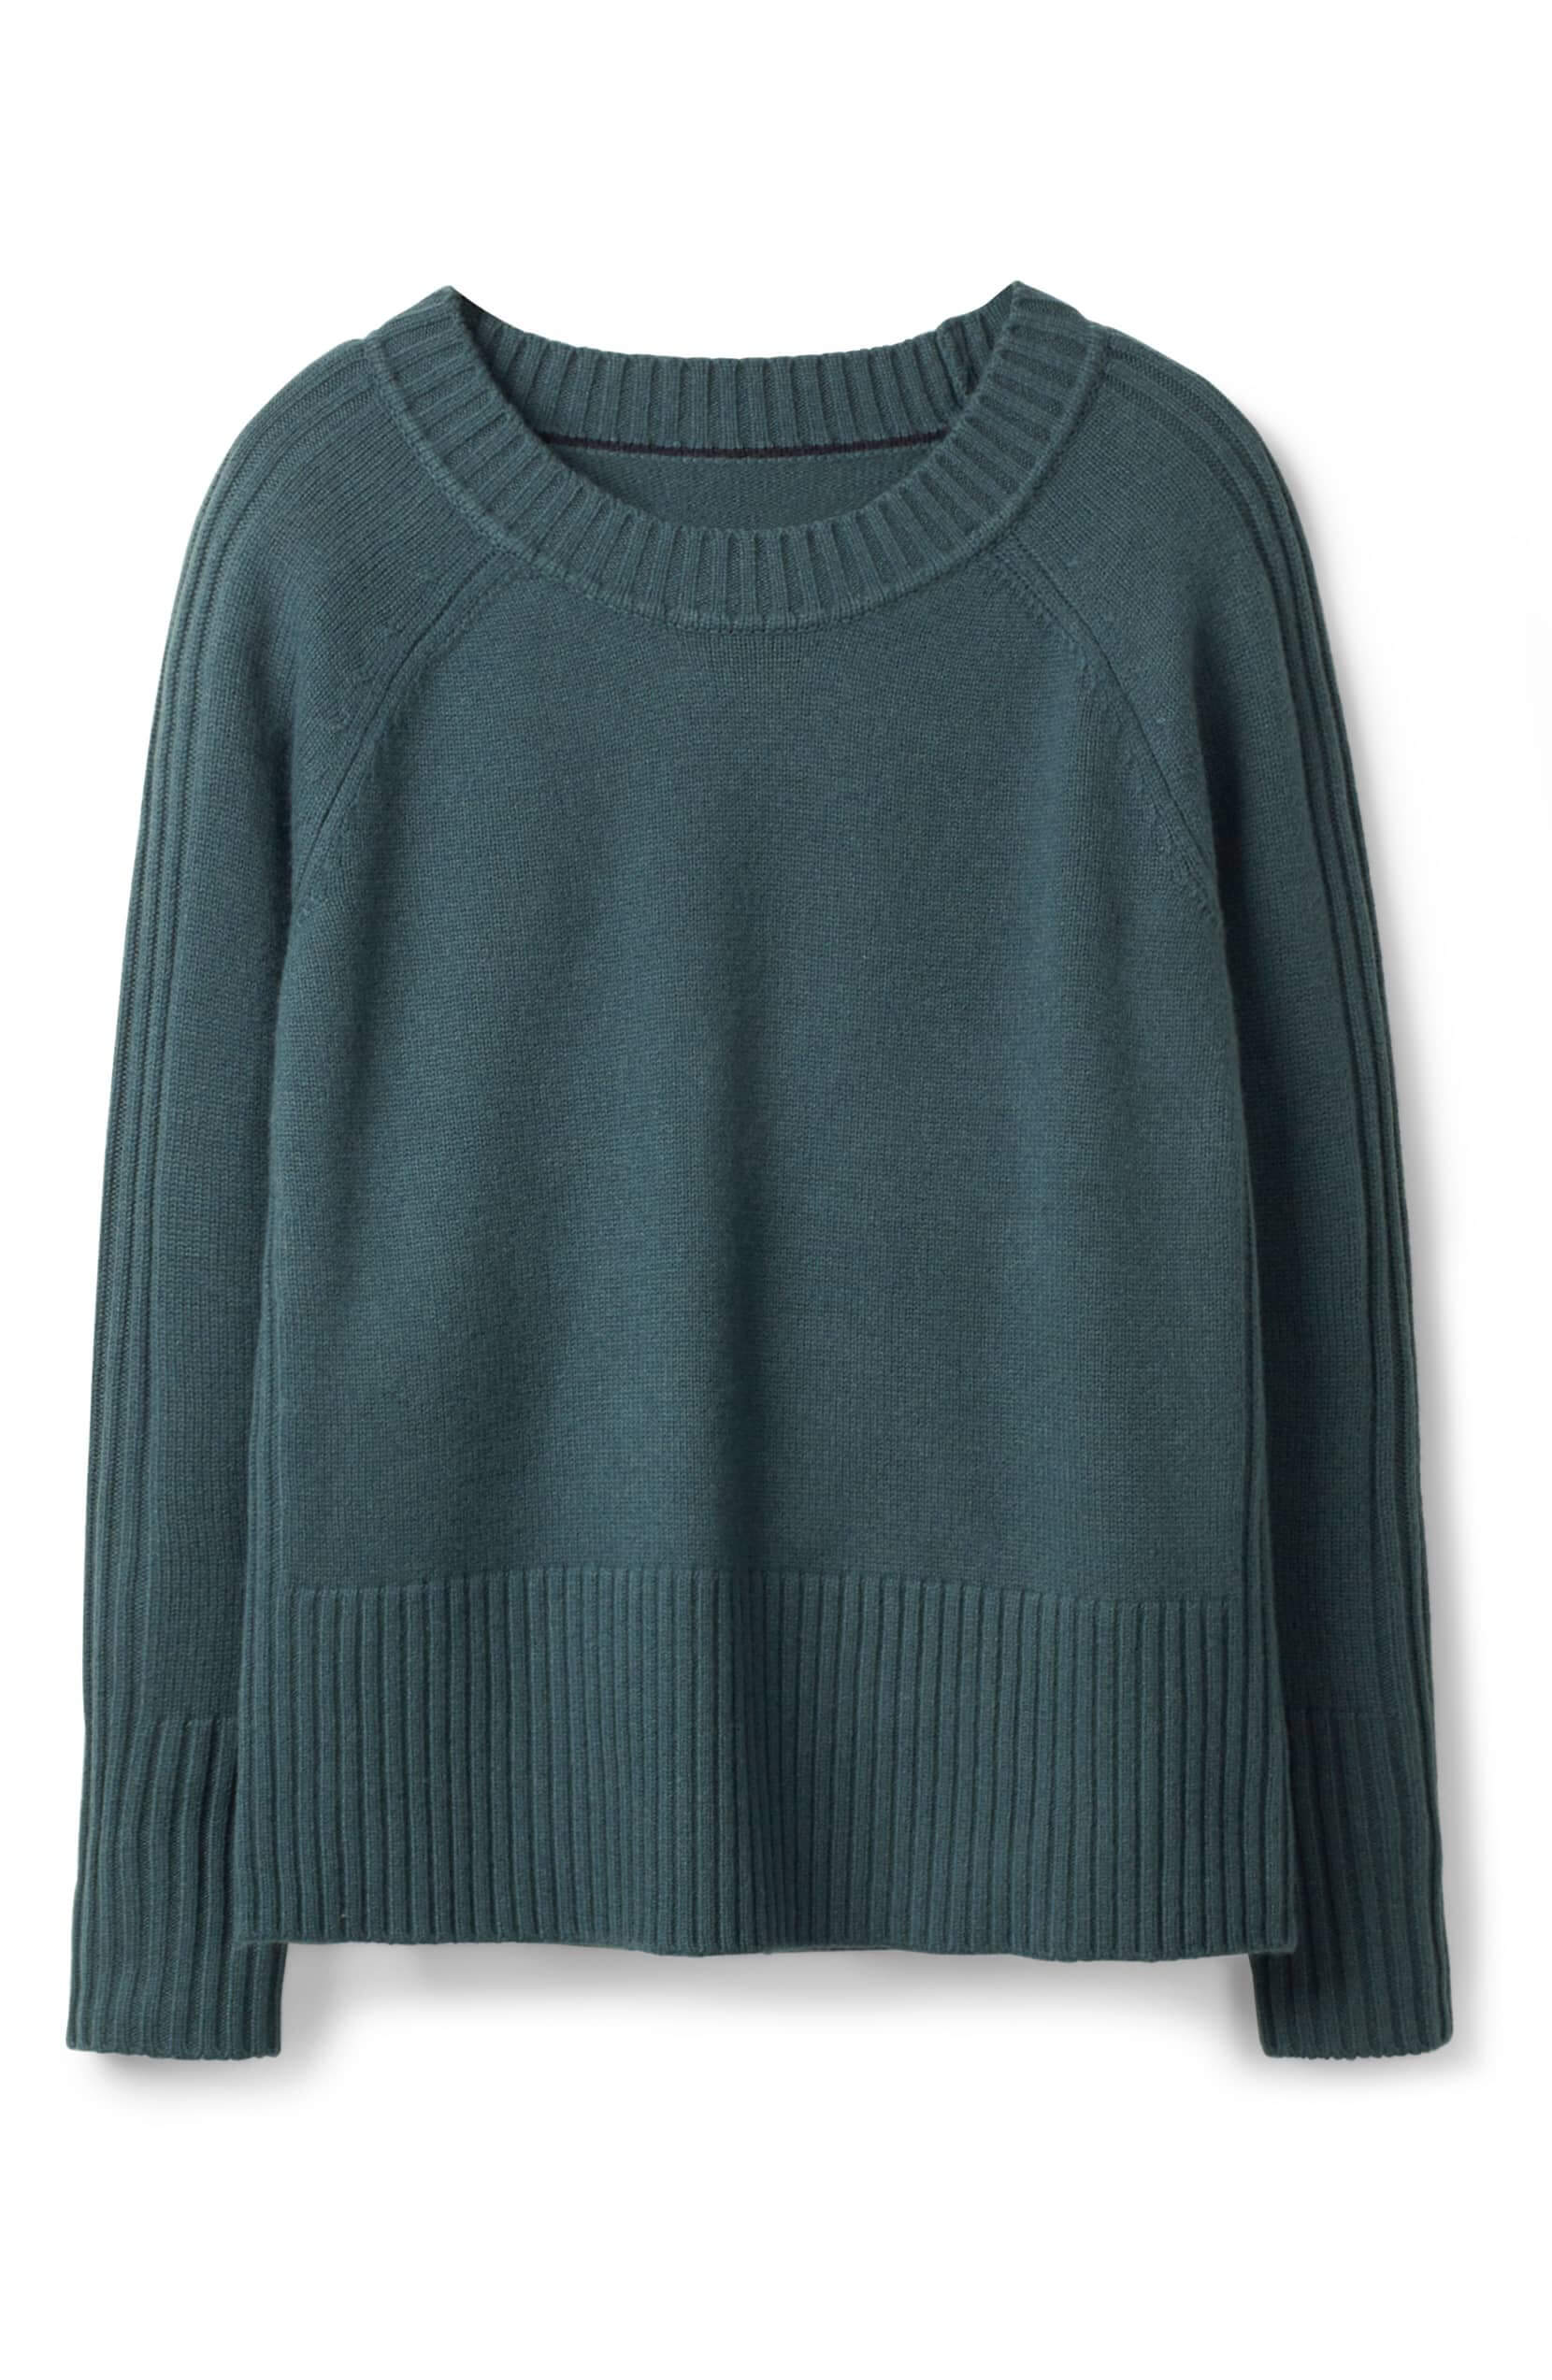 6acace1361b Heidi ribbed sleeve wool cashmere sweater